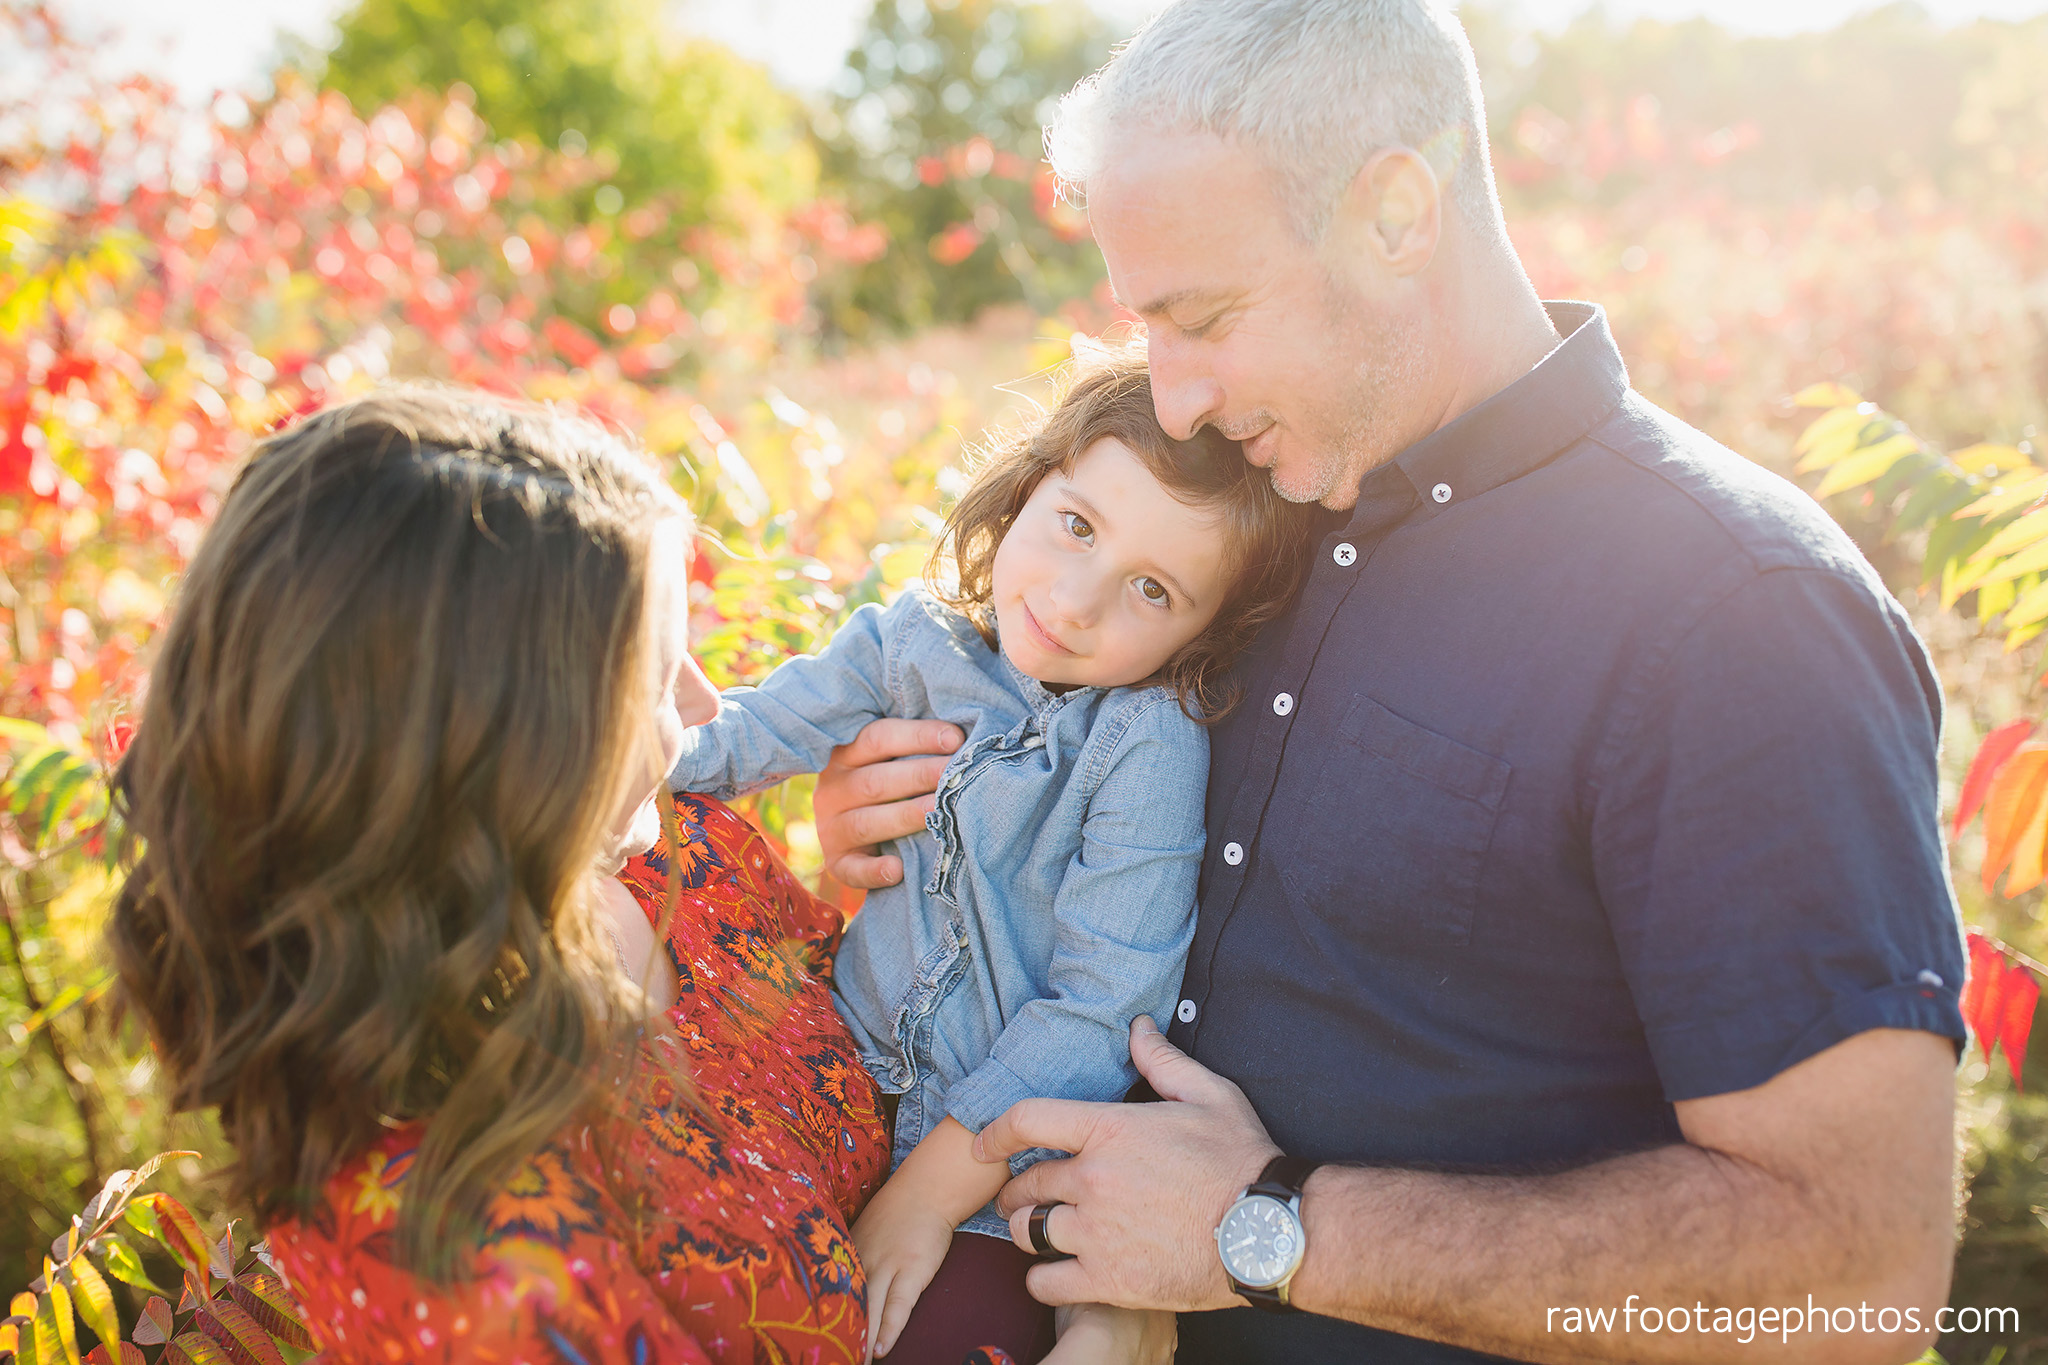 london_ontario_family_photographer-golden_hour_maternity_session-raw_footage_photography014.jpg